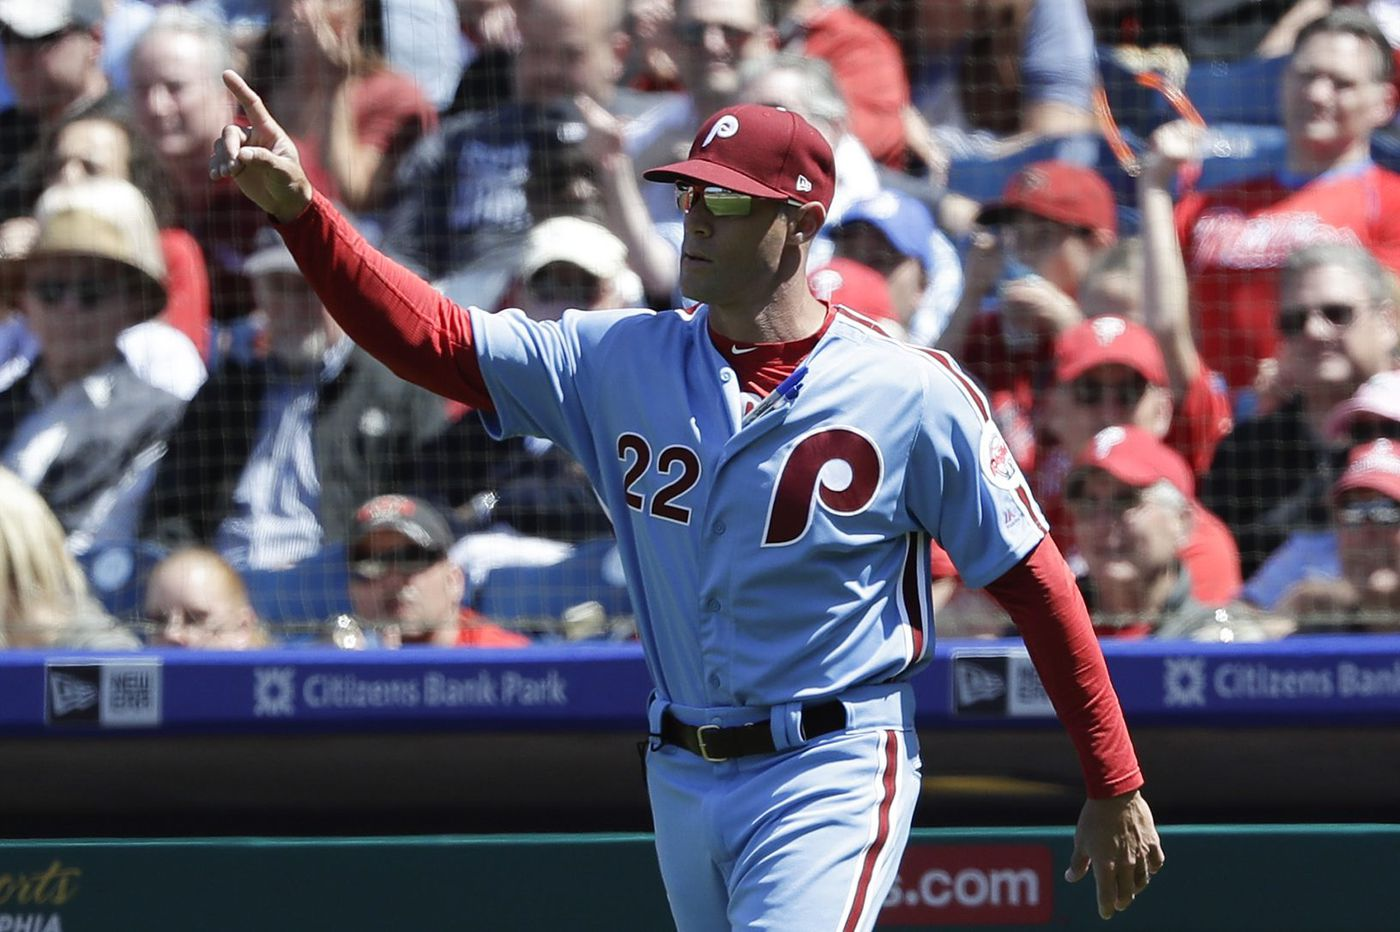 Gabe Kapler wants the Phillies to be open to adding a right-handed starter, too